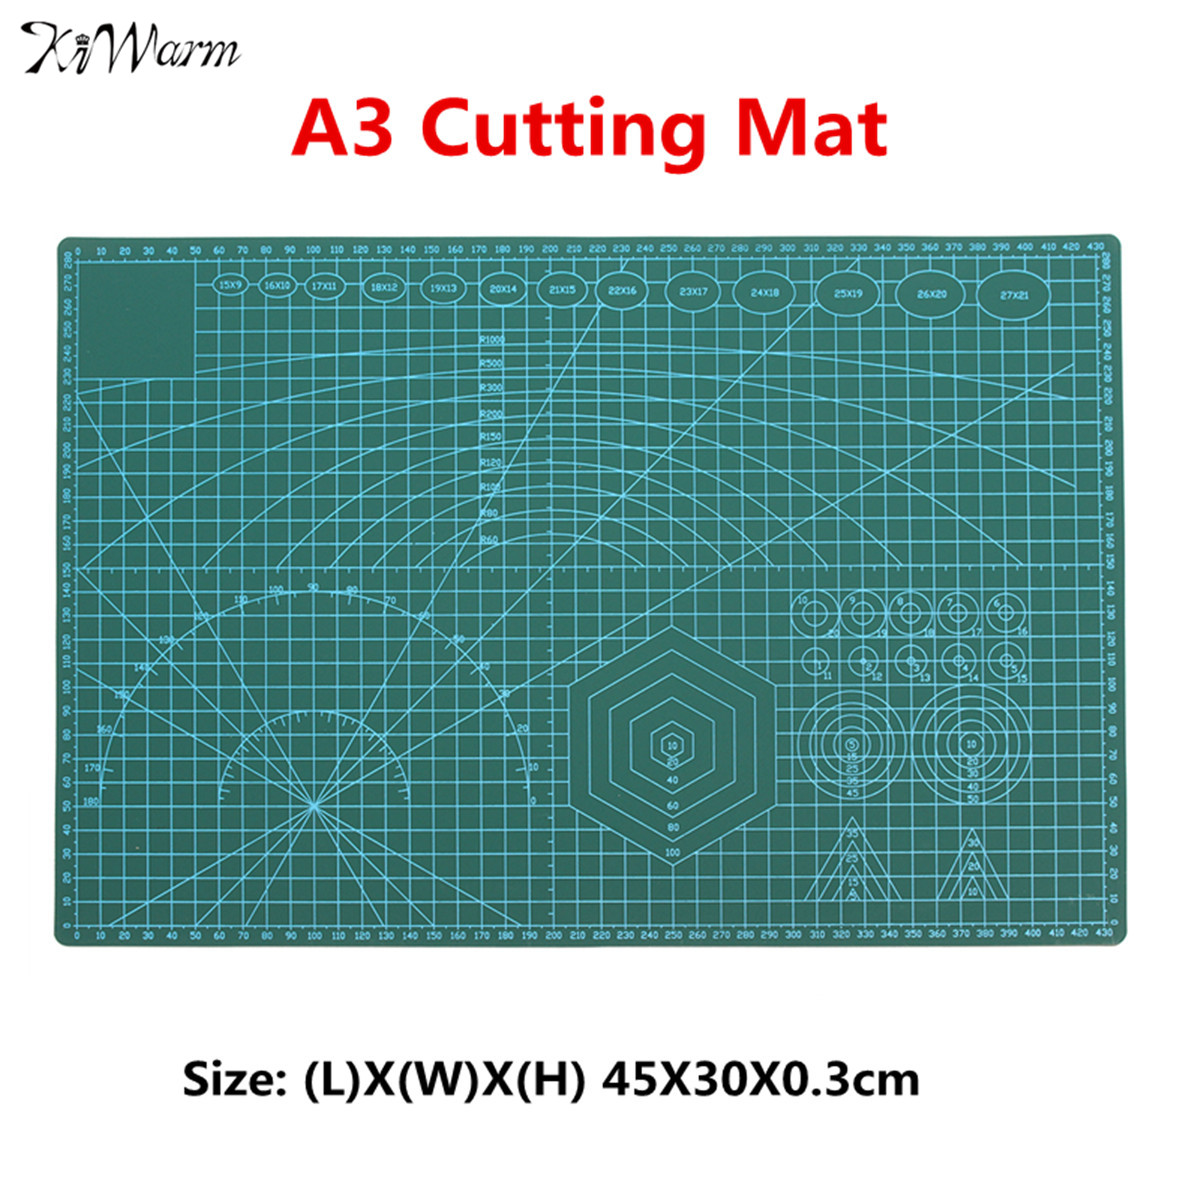 KiWarm Useful A3 Plastic Non Slip Professional Cutting Mat Patchwork Double Sided Cutting Plate for Leather Fabric Paper CraftKiWarm Useful A3 Plastic Non Slip Professional Cutting Mat Patchwork Double Sided Cutting Plate for Leather Fabric Paper Craft